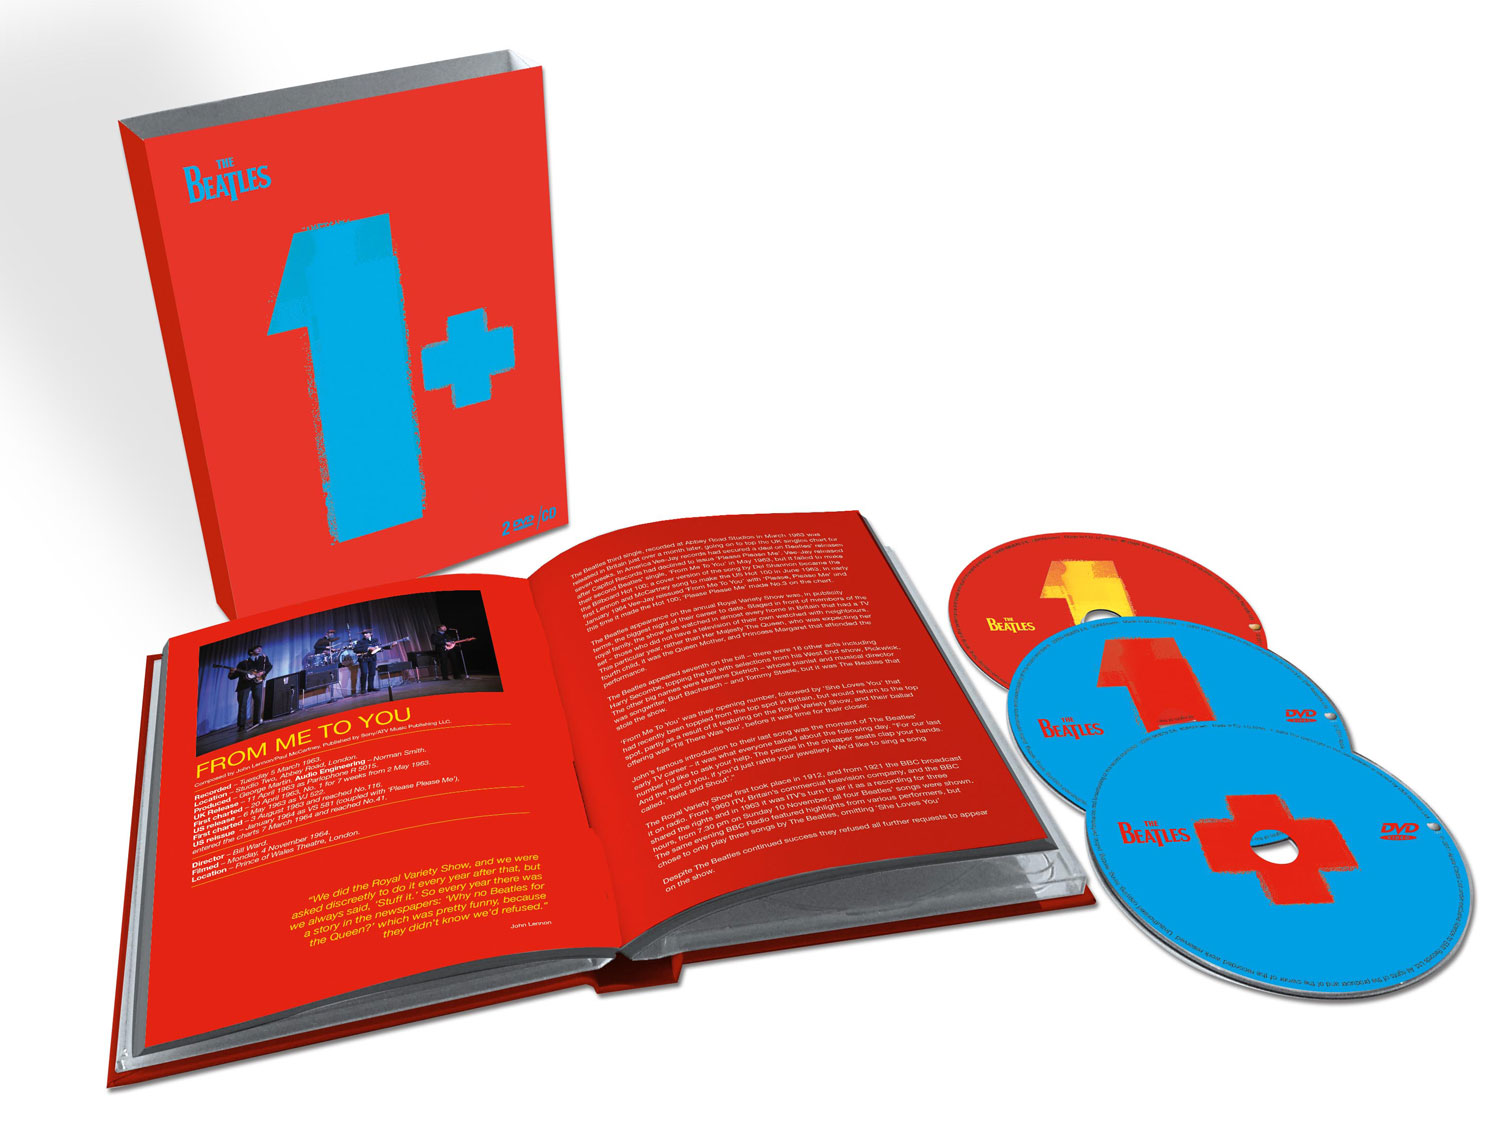 The Beatles / 1+ Deluxe CD+2dvd with restored videos and remixed audio